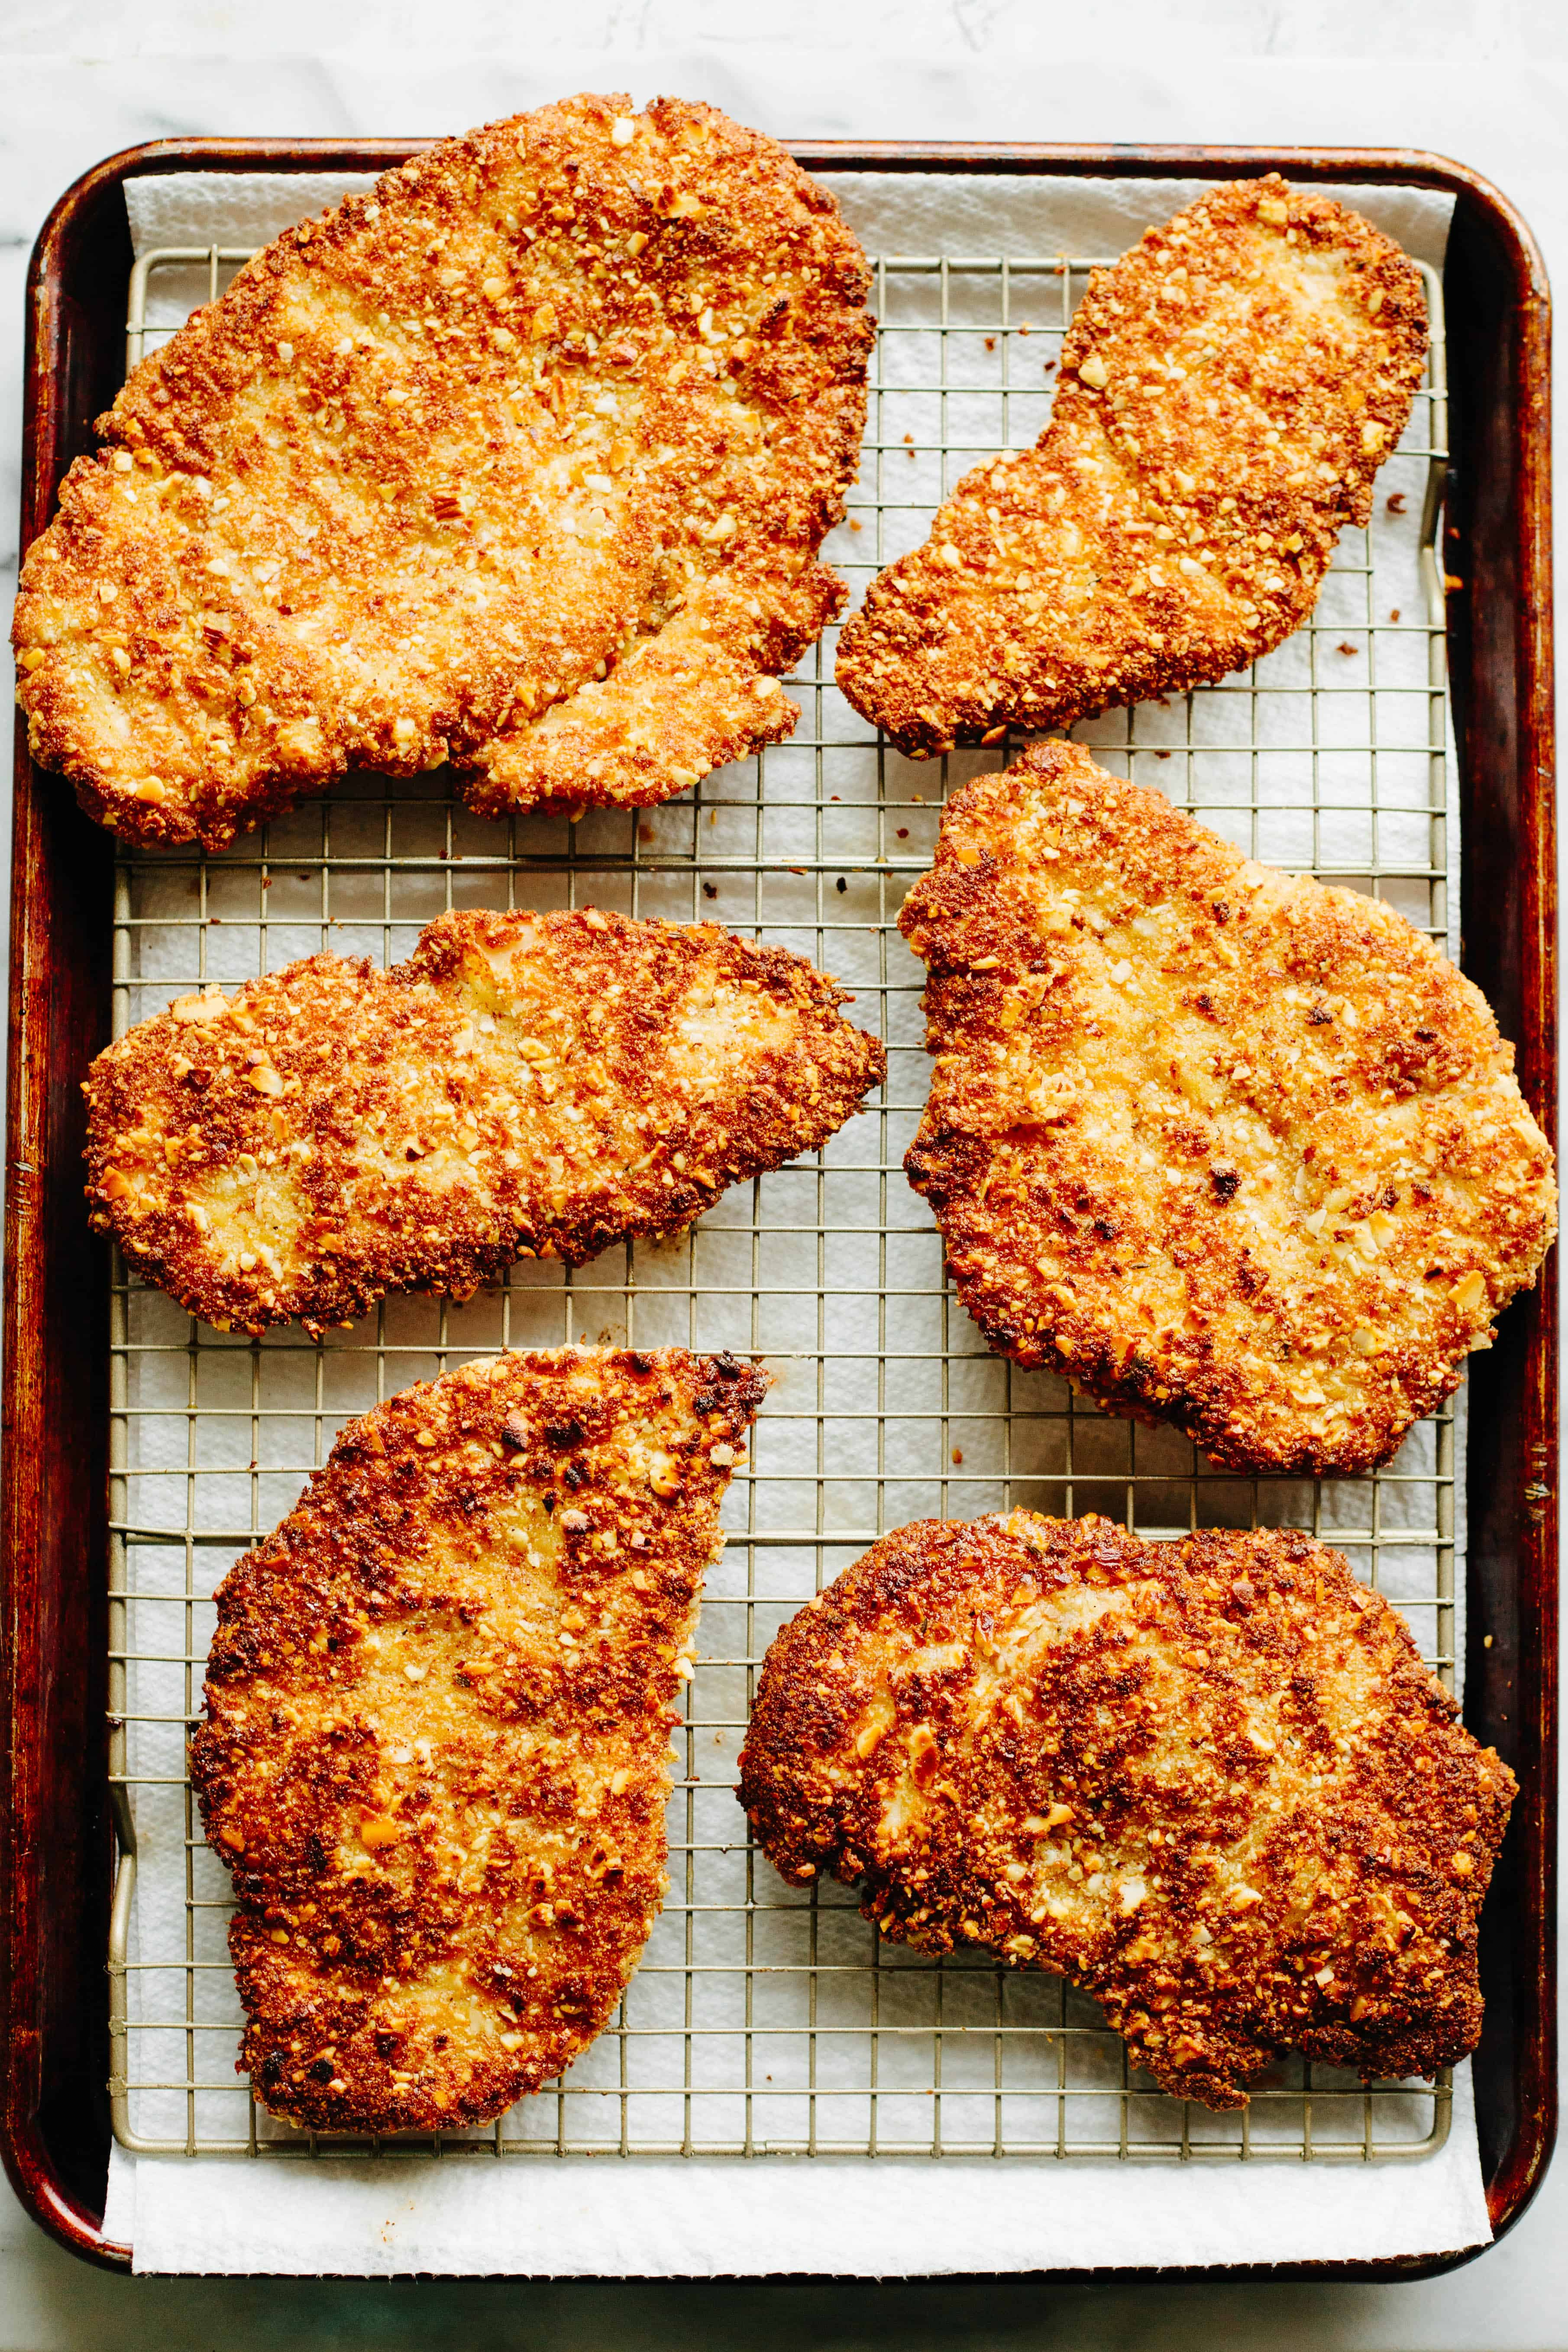 Almond breaded chicken cutlets draining on a wire rack over a baking sheet.